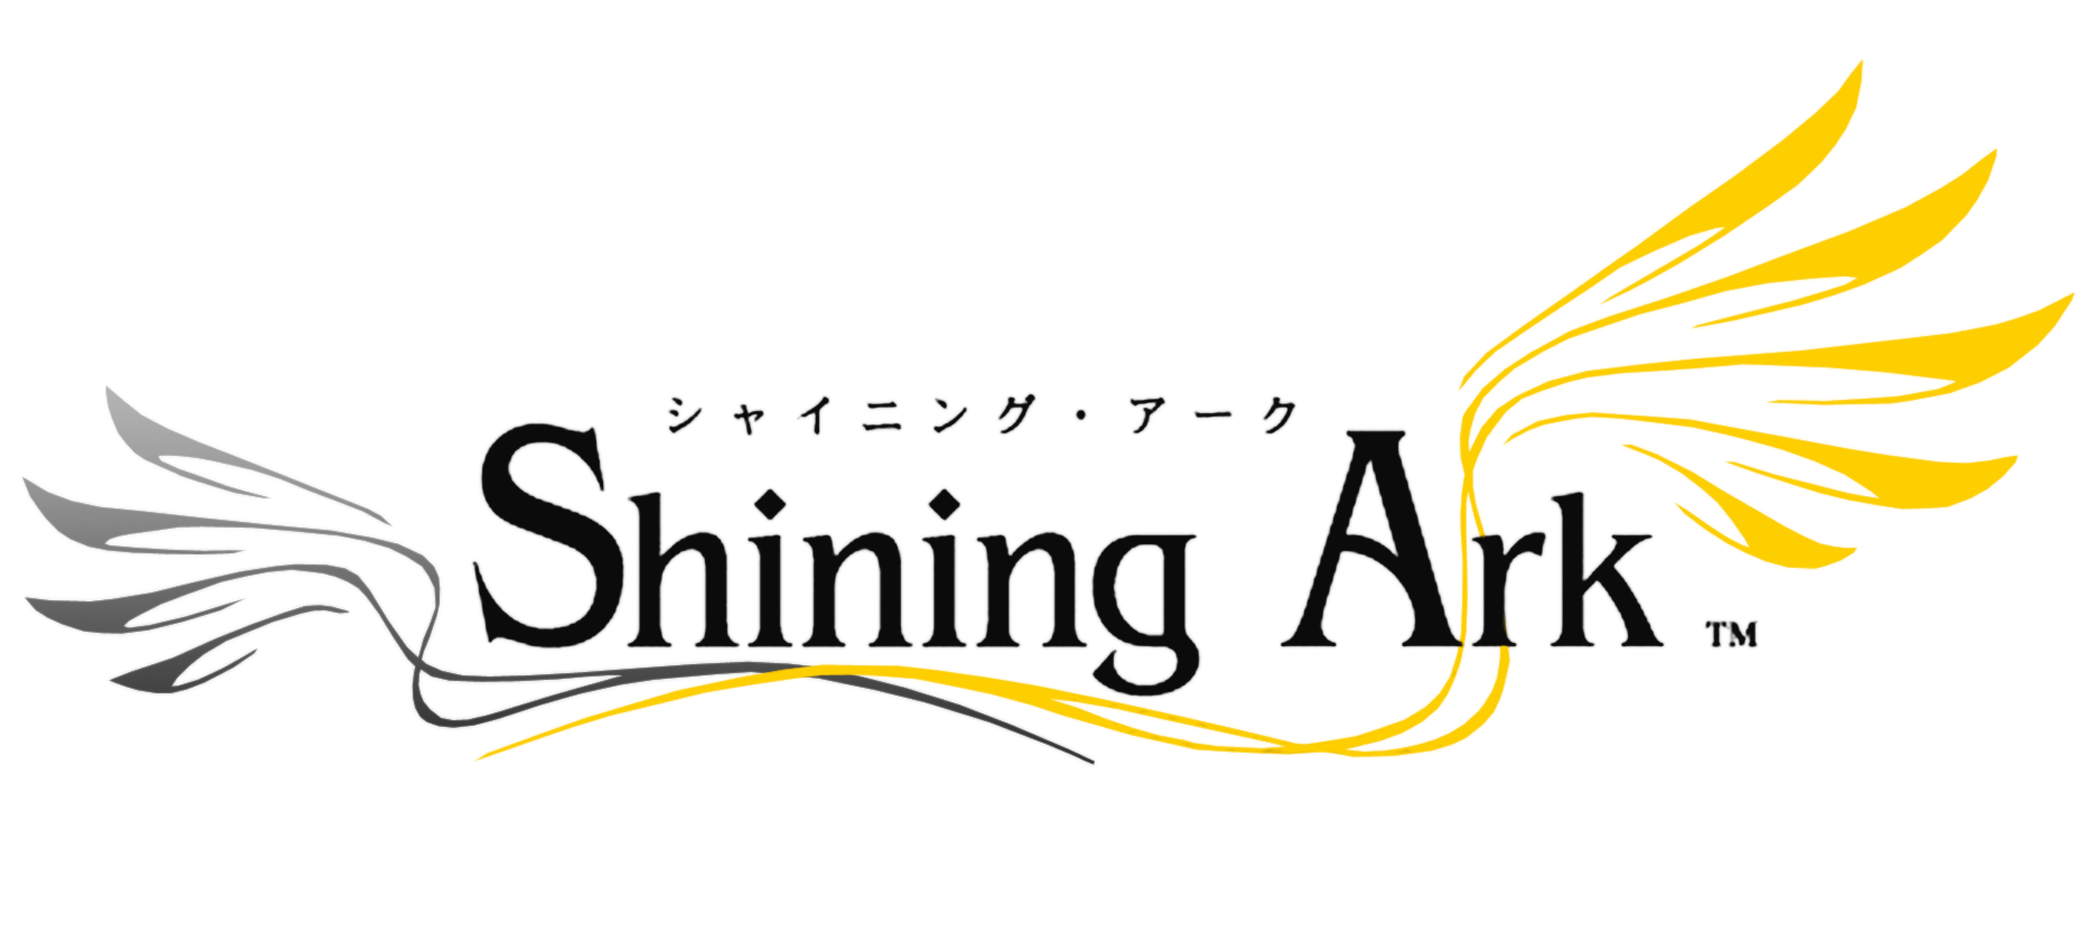 PNG-Shining Series LOGO